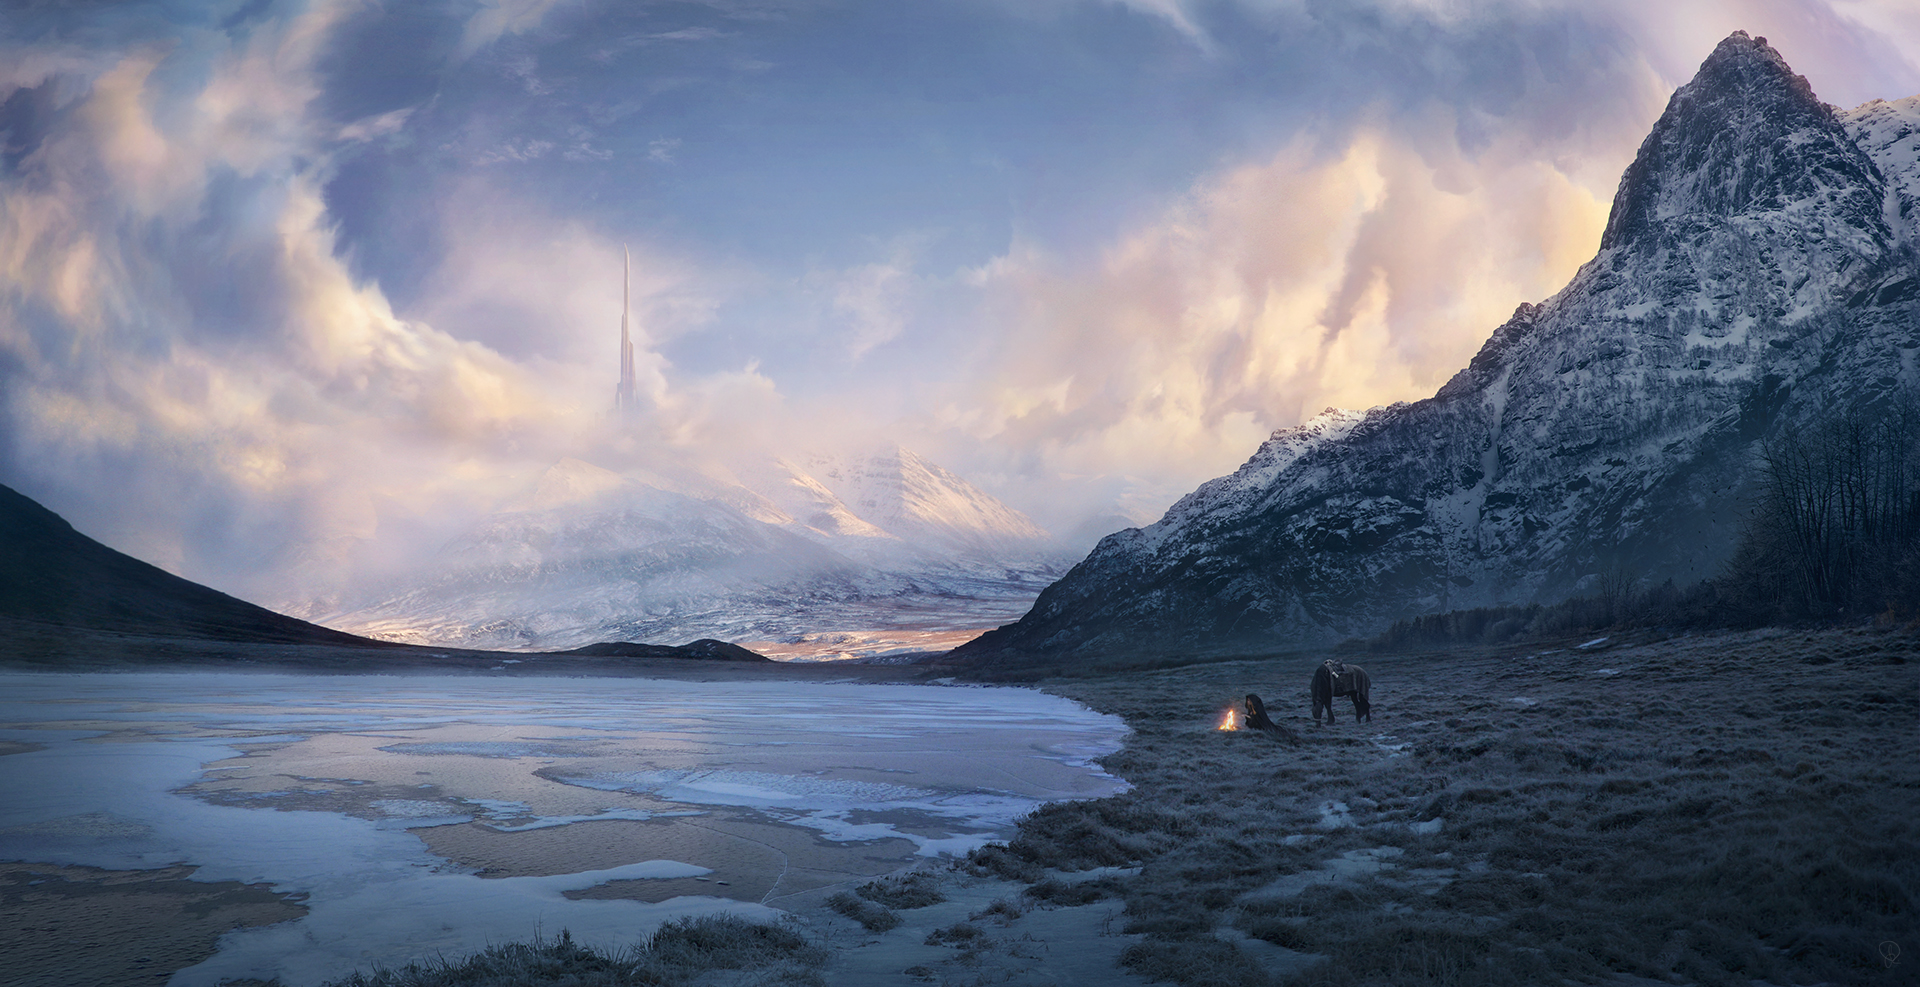 1238-flame-in-cold-winter-jessica-rossier